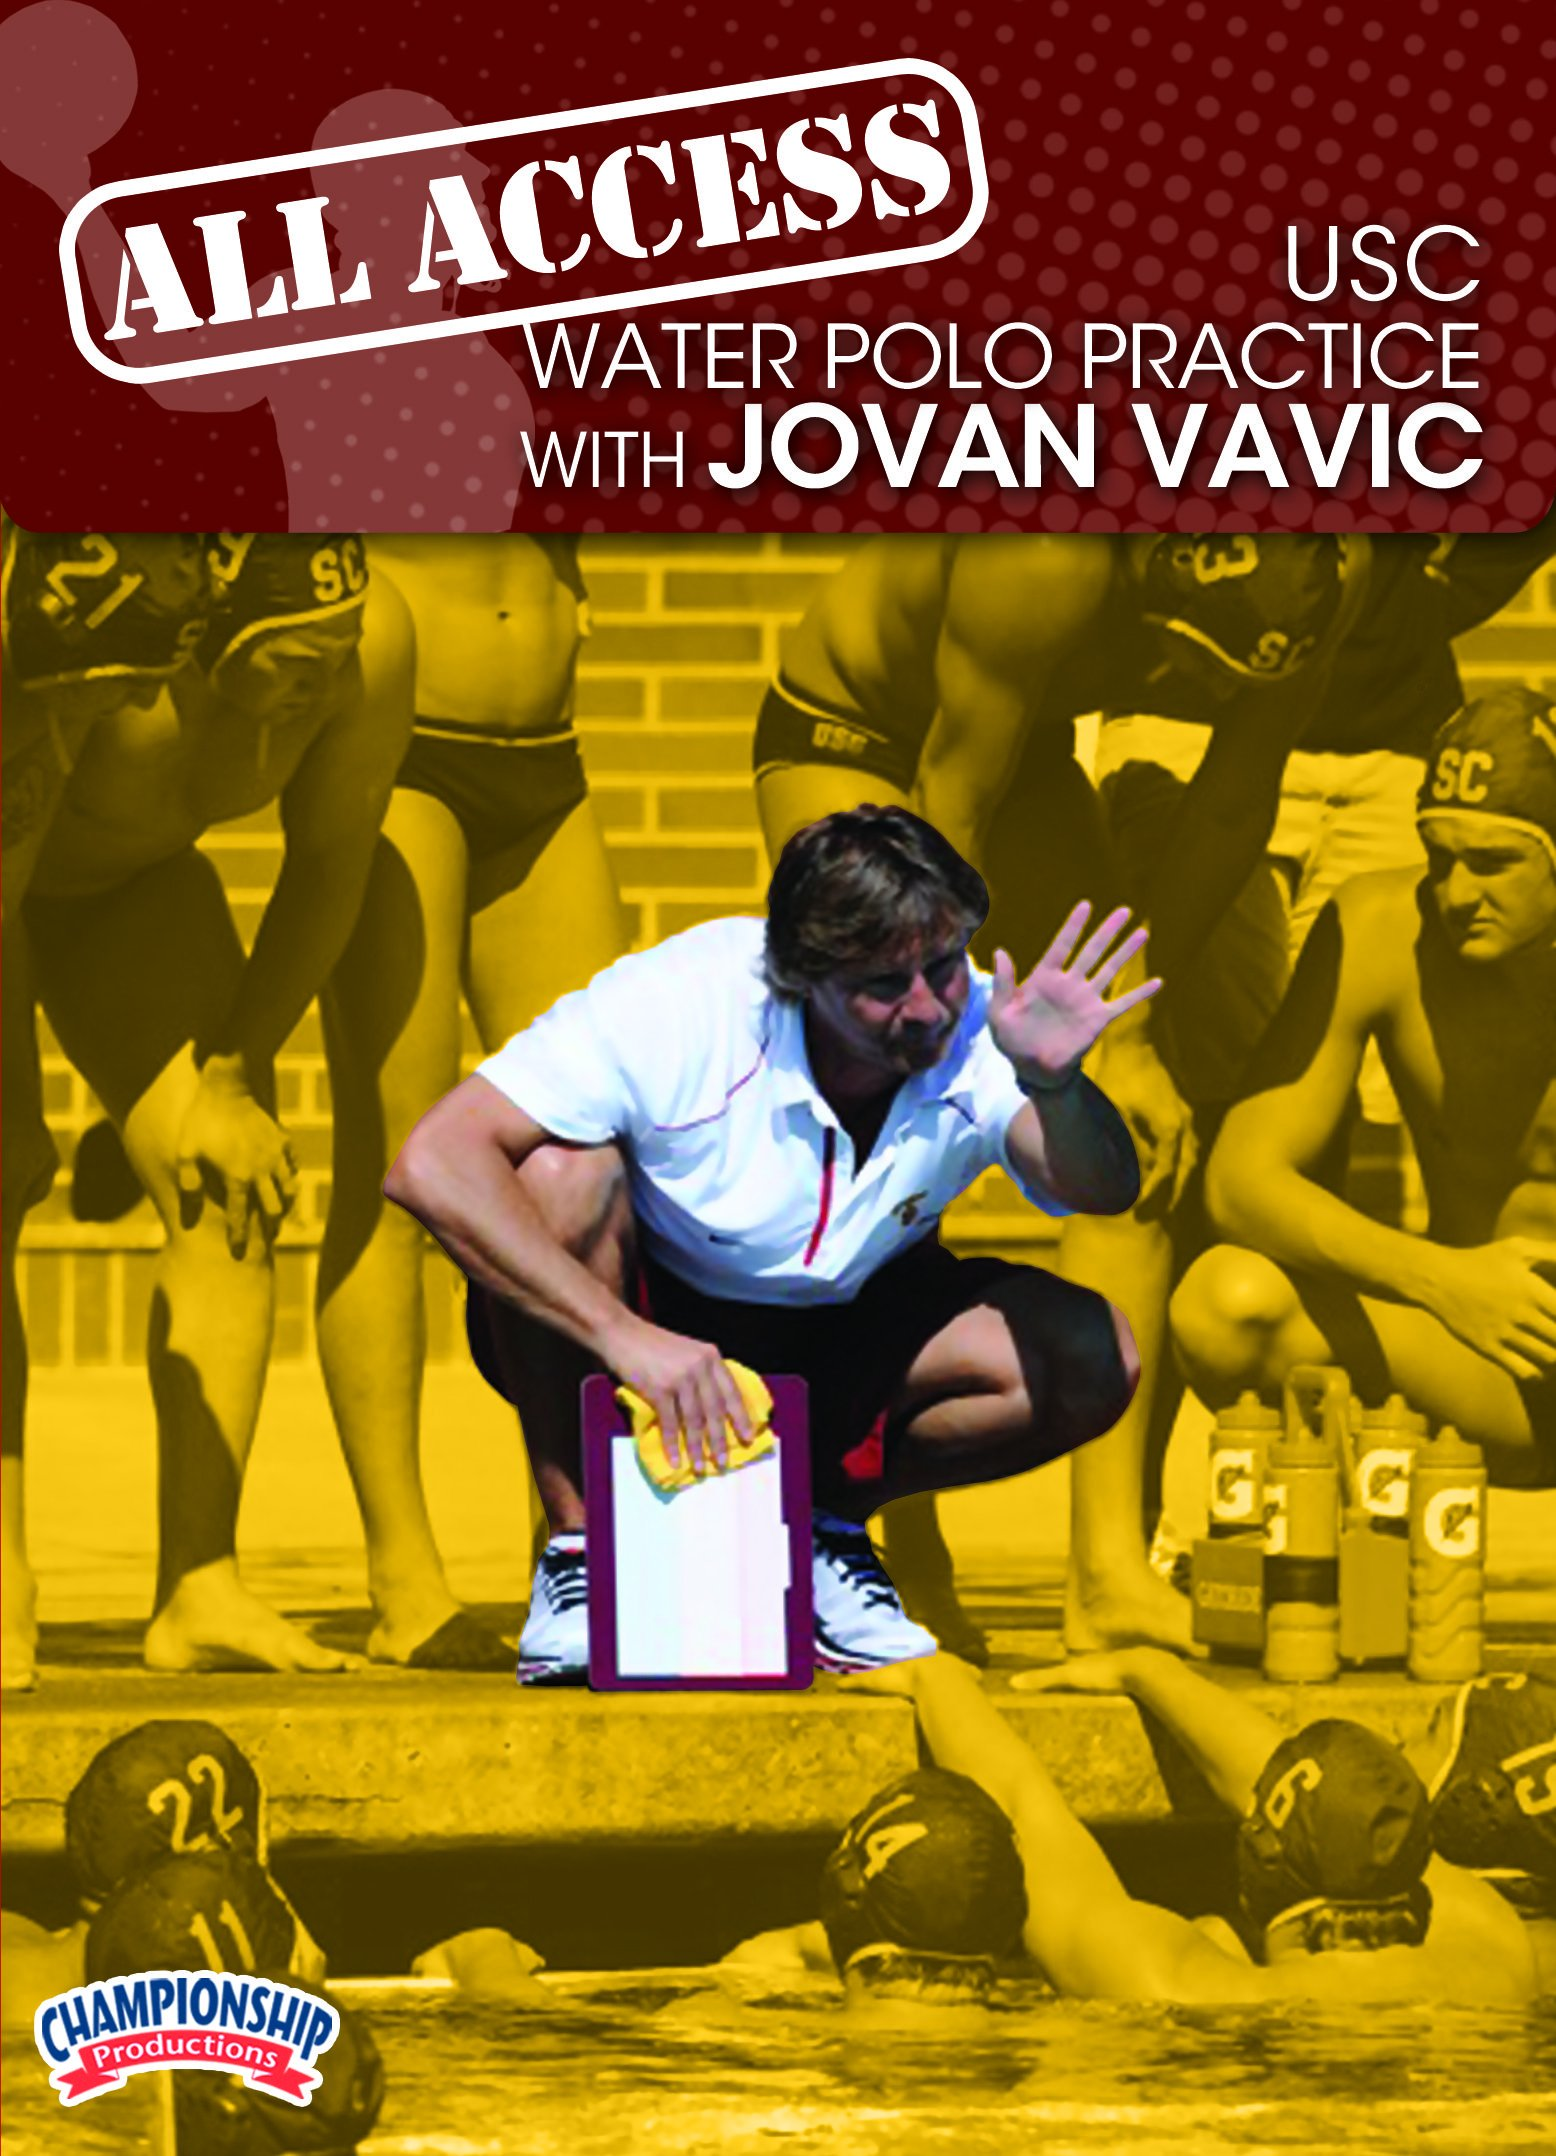 Championship Productions Jovan Vavic: All Access USC Water Polo Practice DVD by Championship Productions